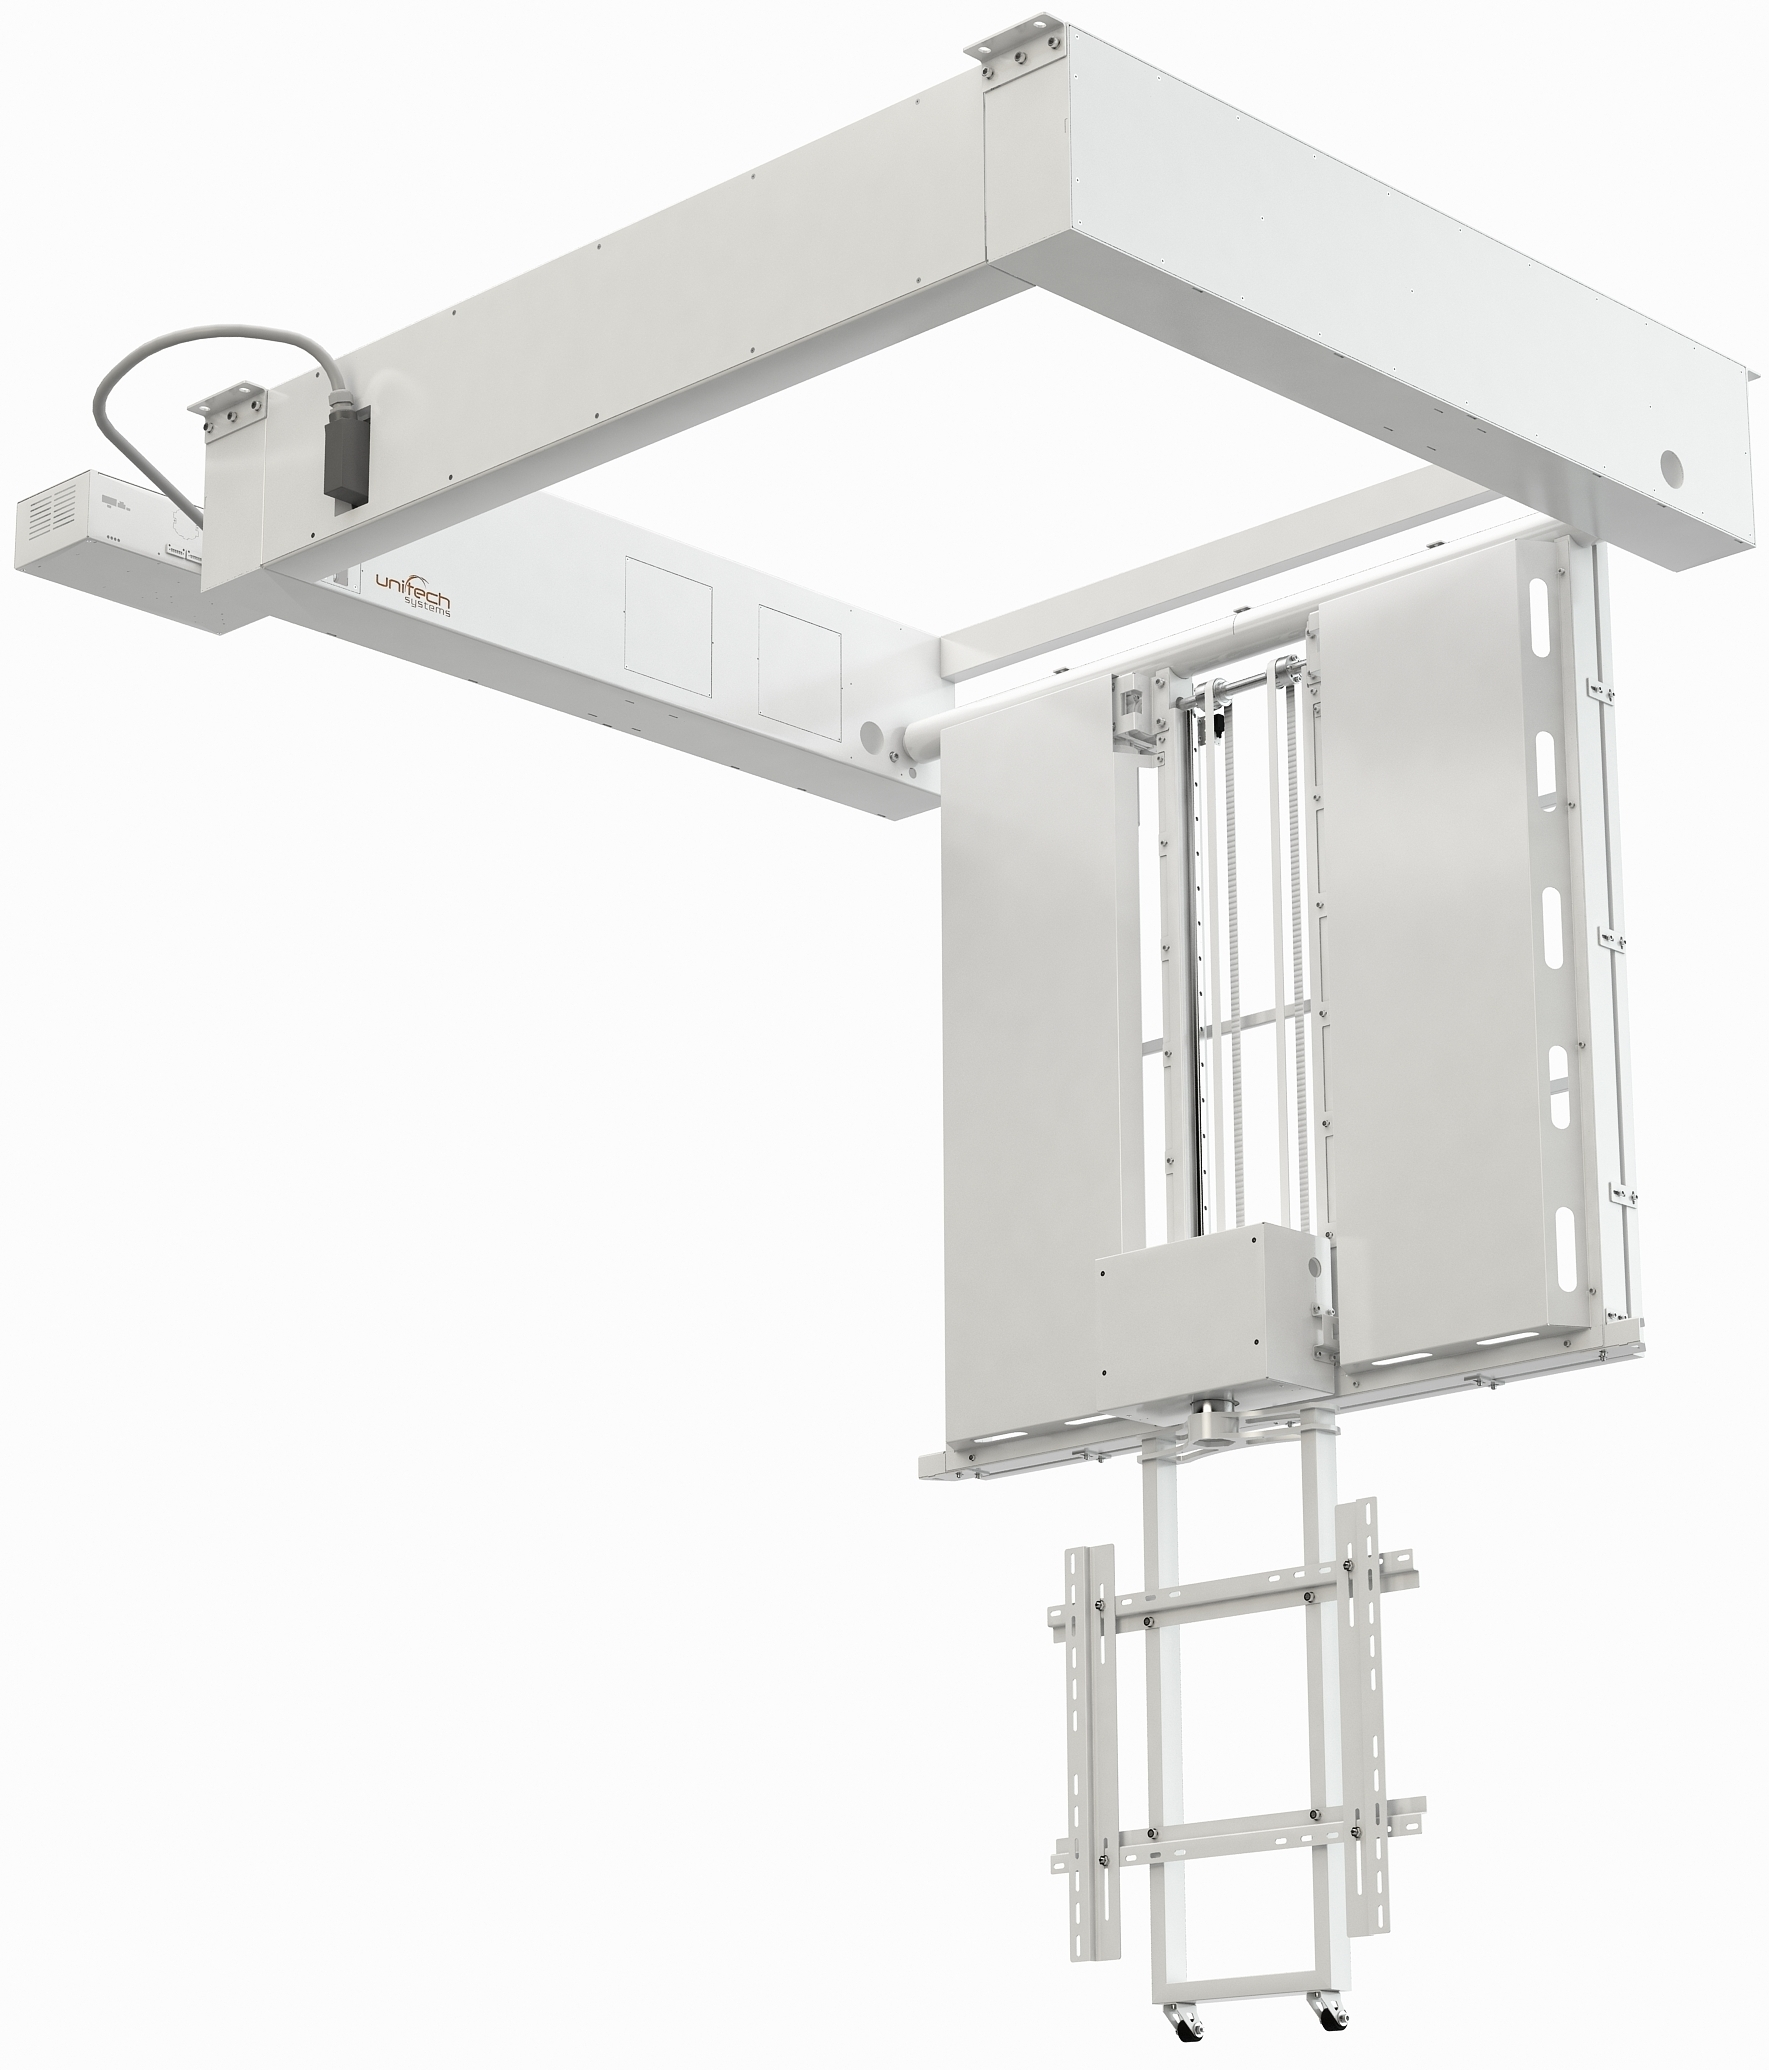 Flat Panel Ceiling Lift with vertical motion and rotation FPLCV2-52-65+R+LM+LOCK